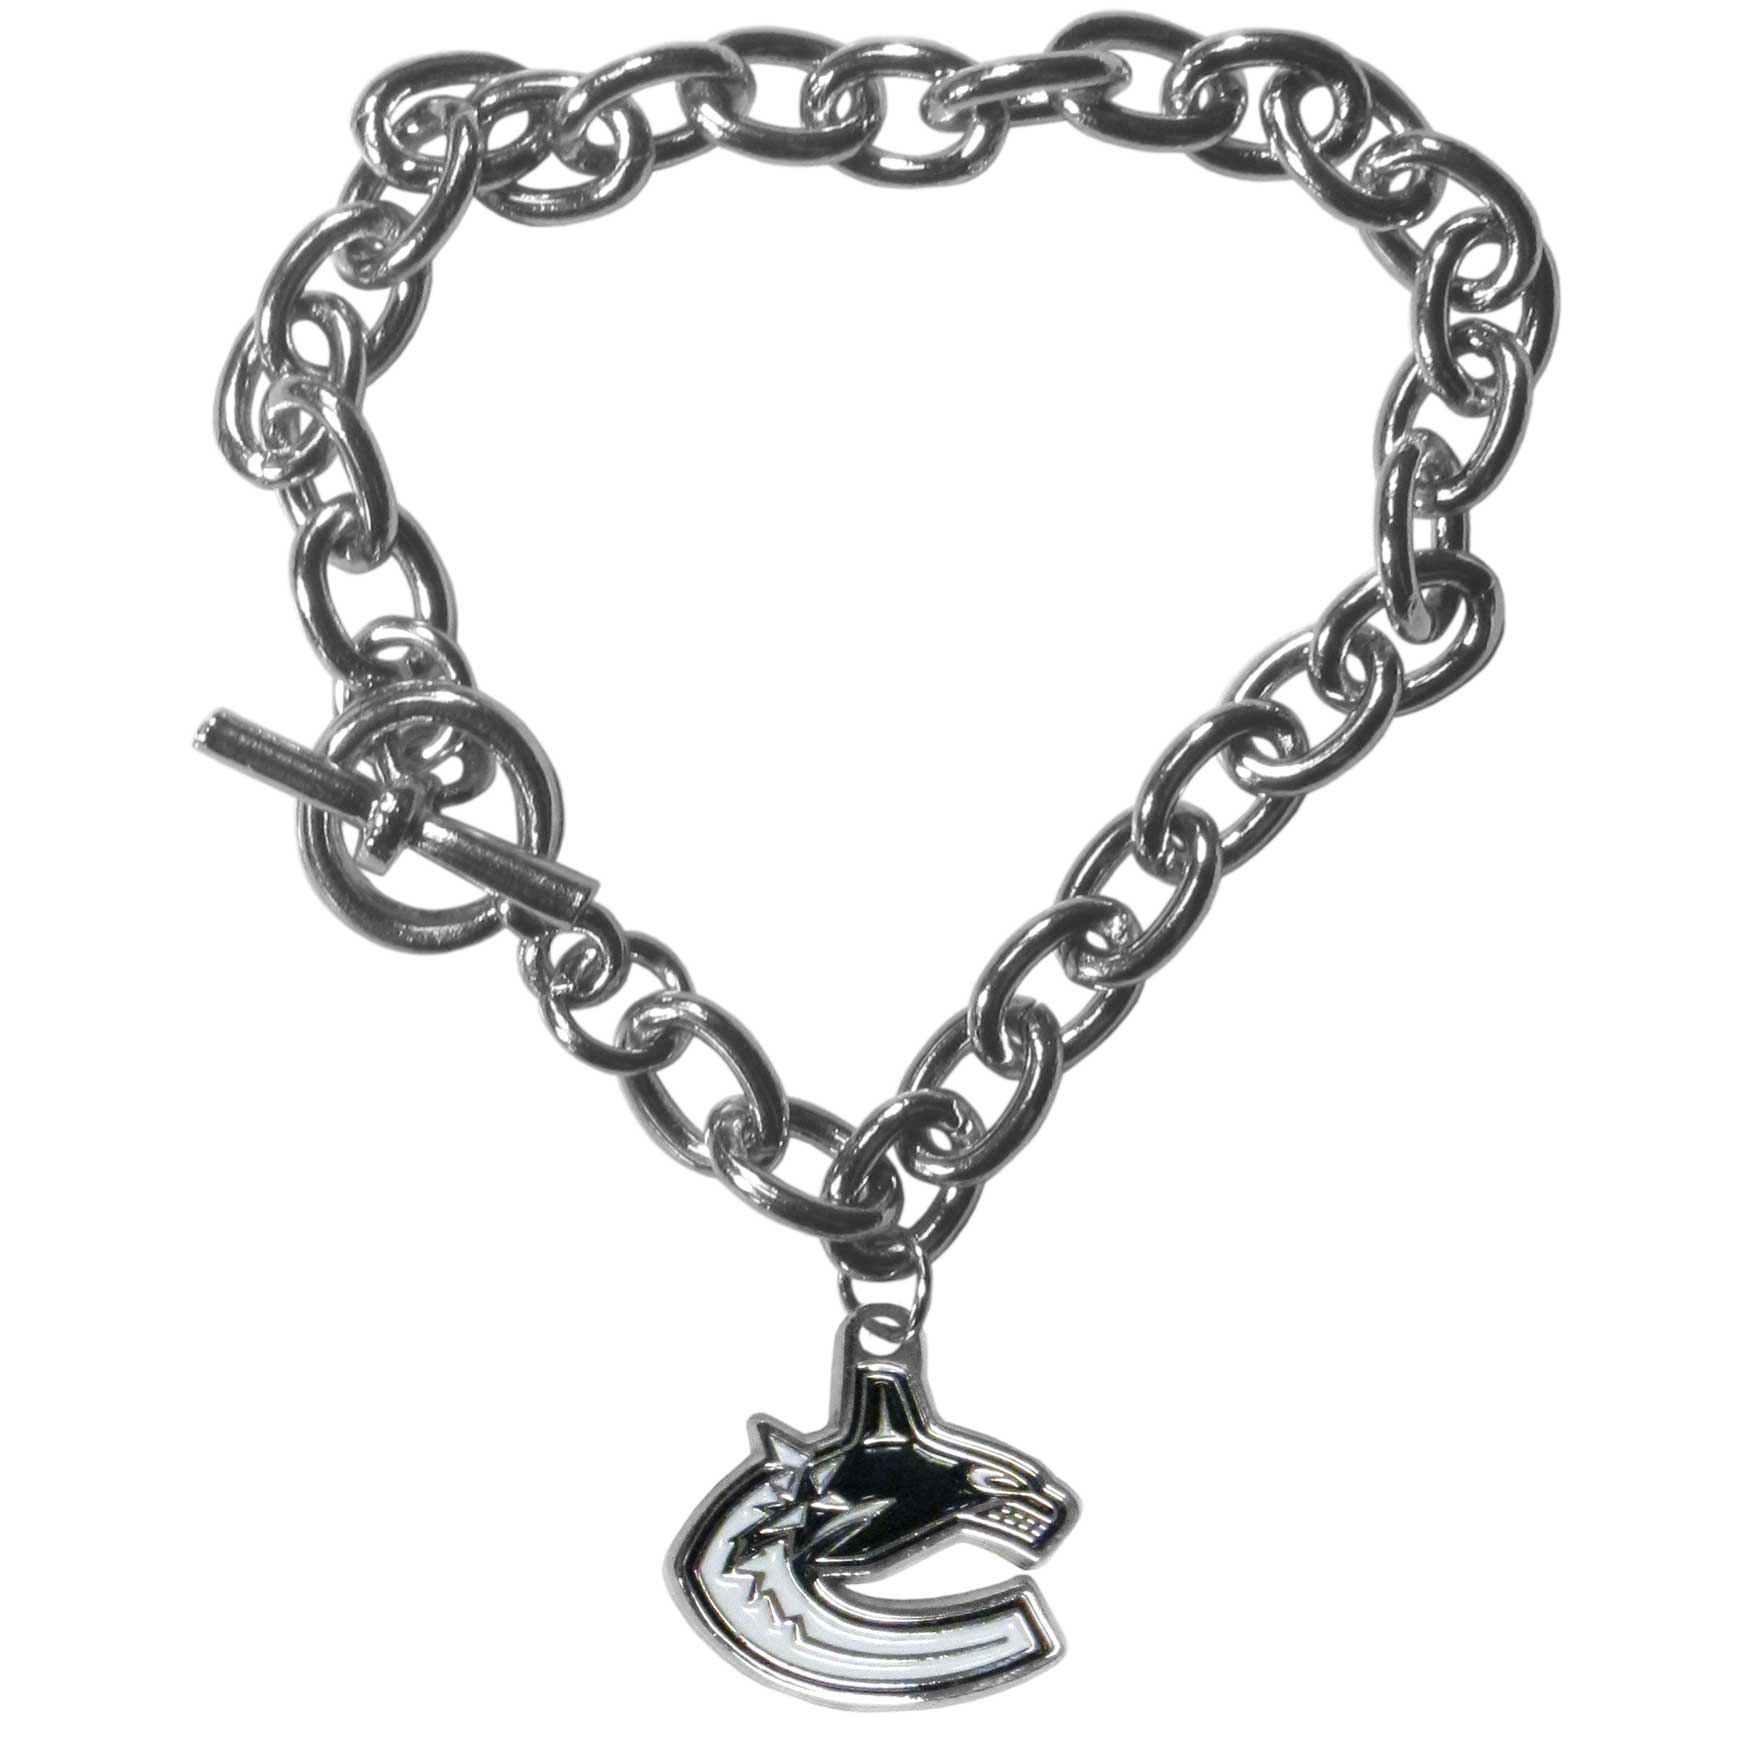 Vancouver Canucks® Charm Chain Bracelet - Our classic single charm bracelet is a great way to show off your team pride! The 7.5 inch large link chain features a high polish Vancouver Canucks® charm and features a toggle clasp which makes it super easy to take on and off.